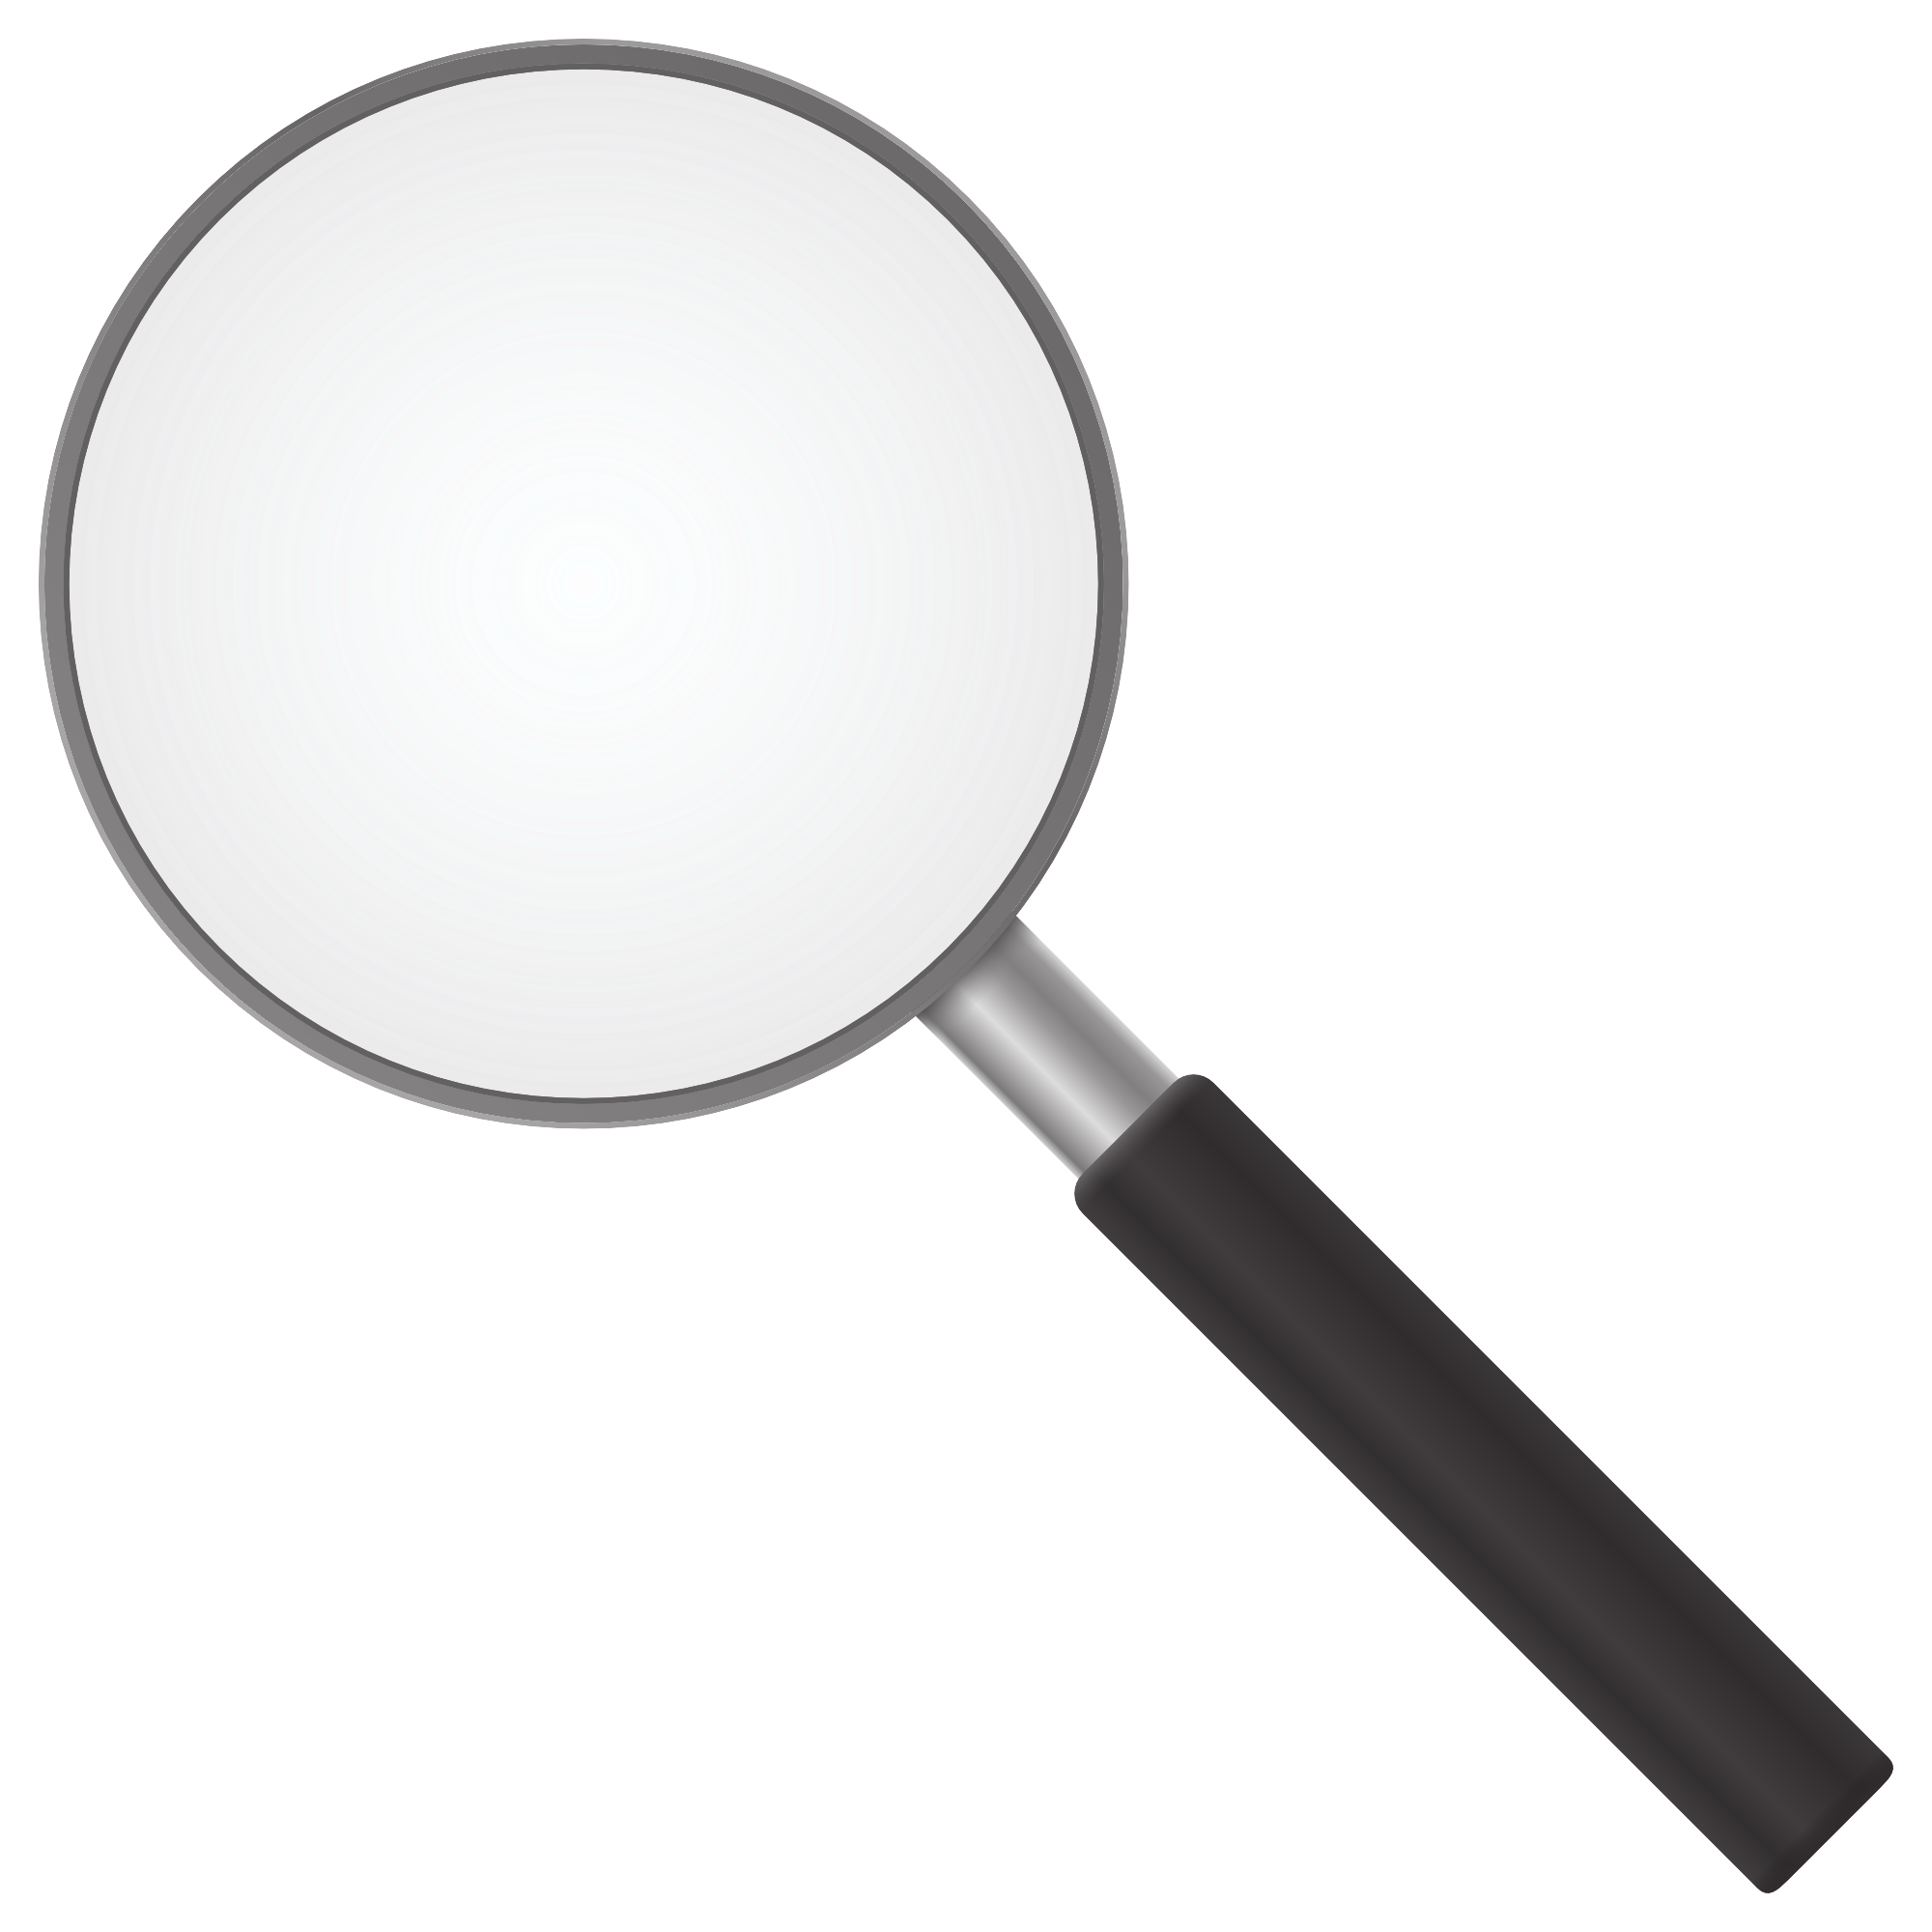 Magnifying PNG - 22678